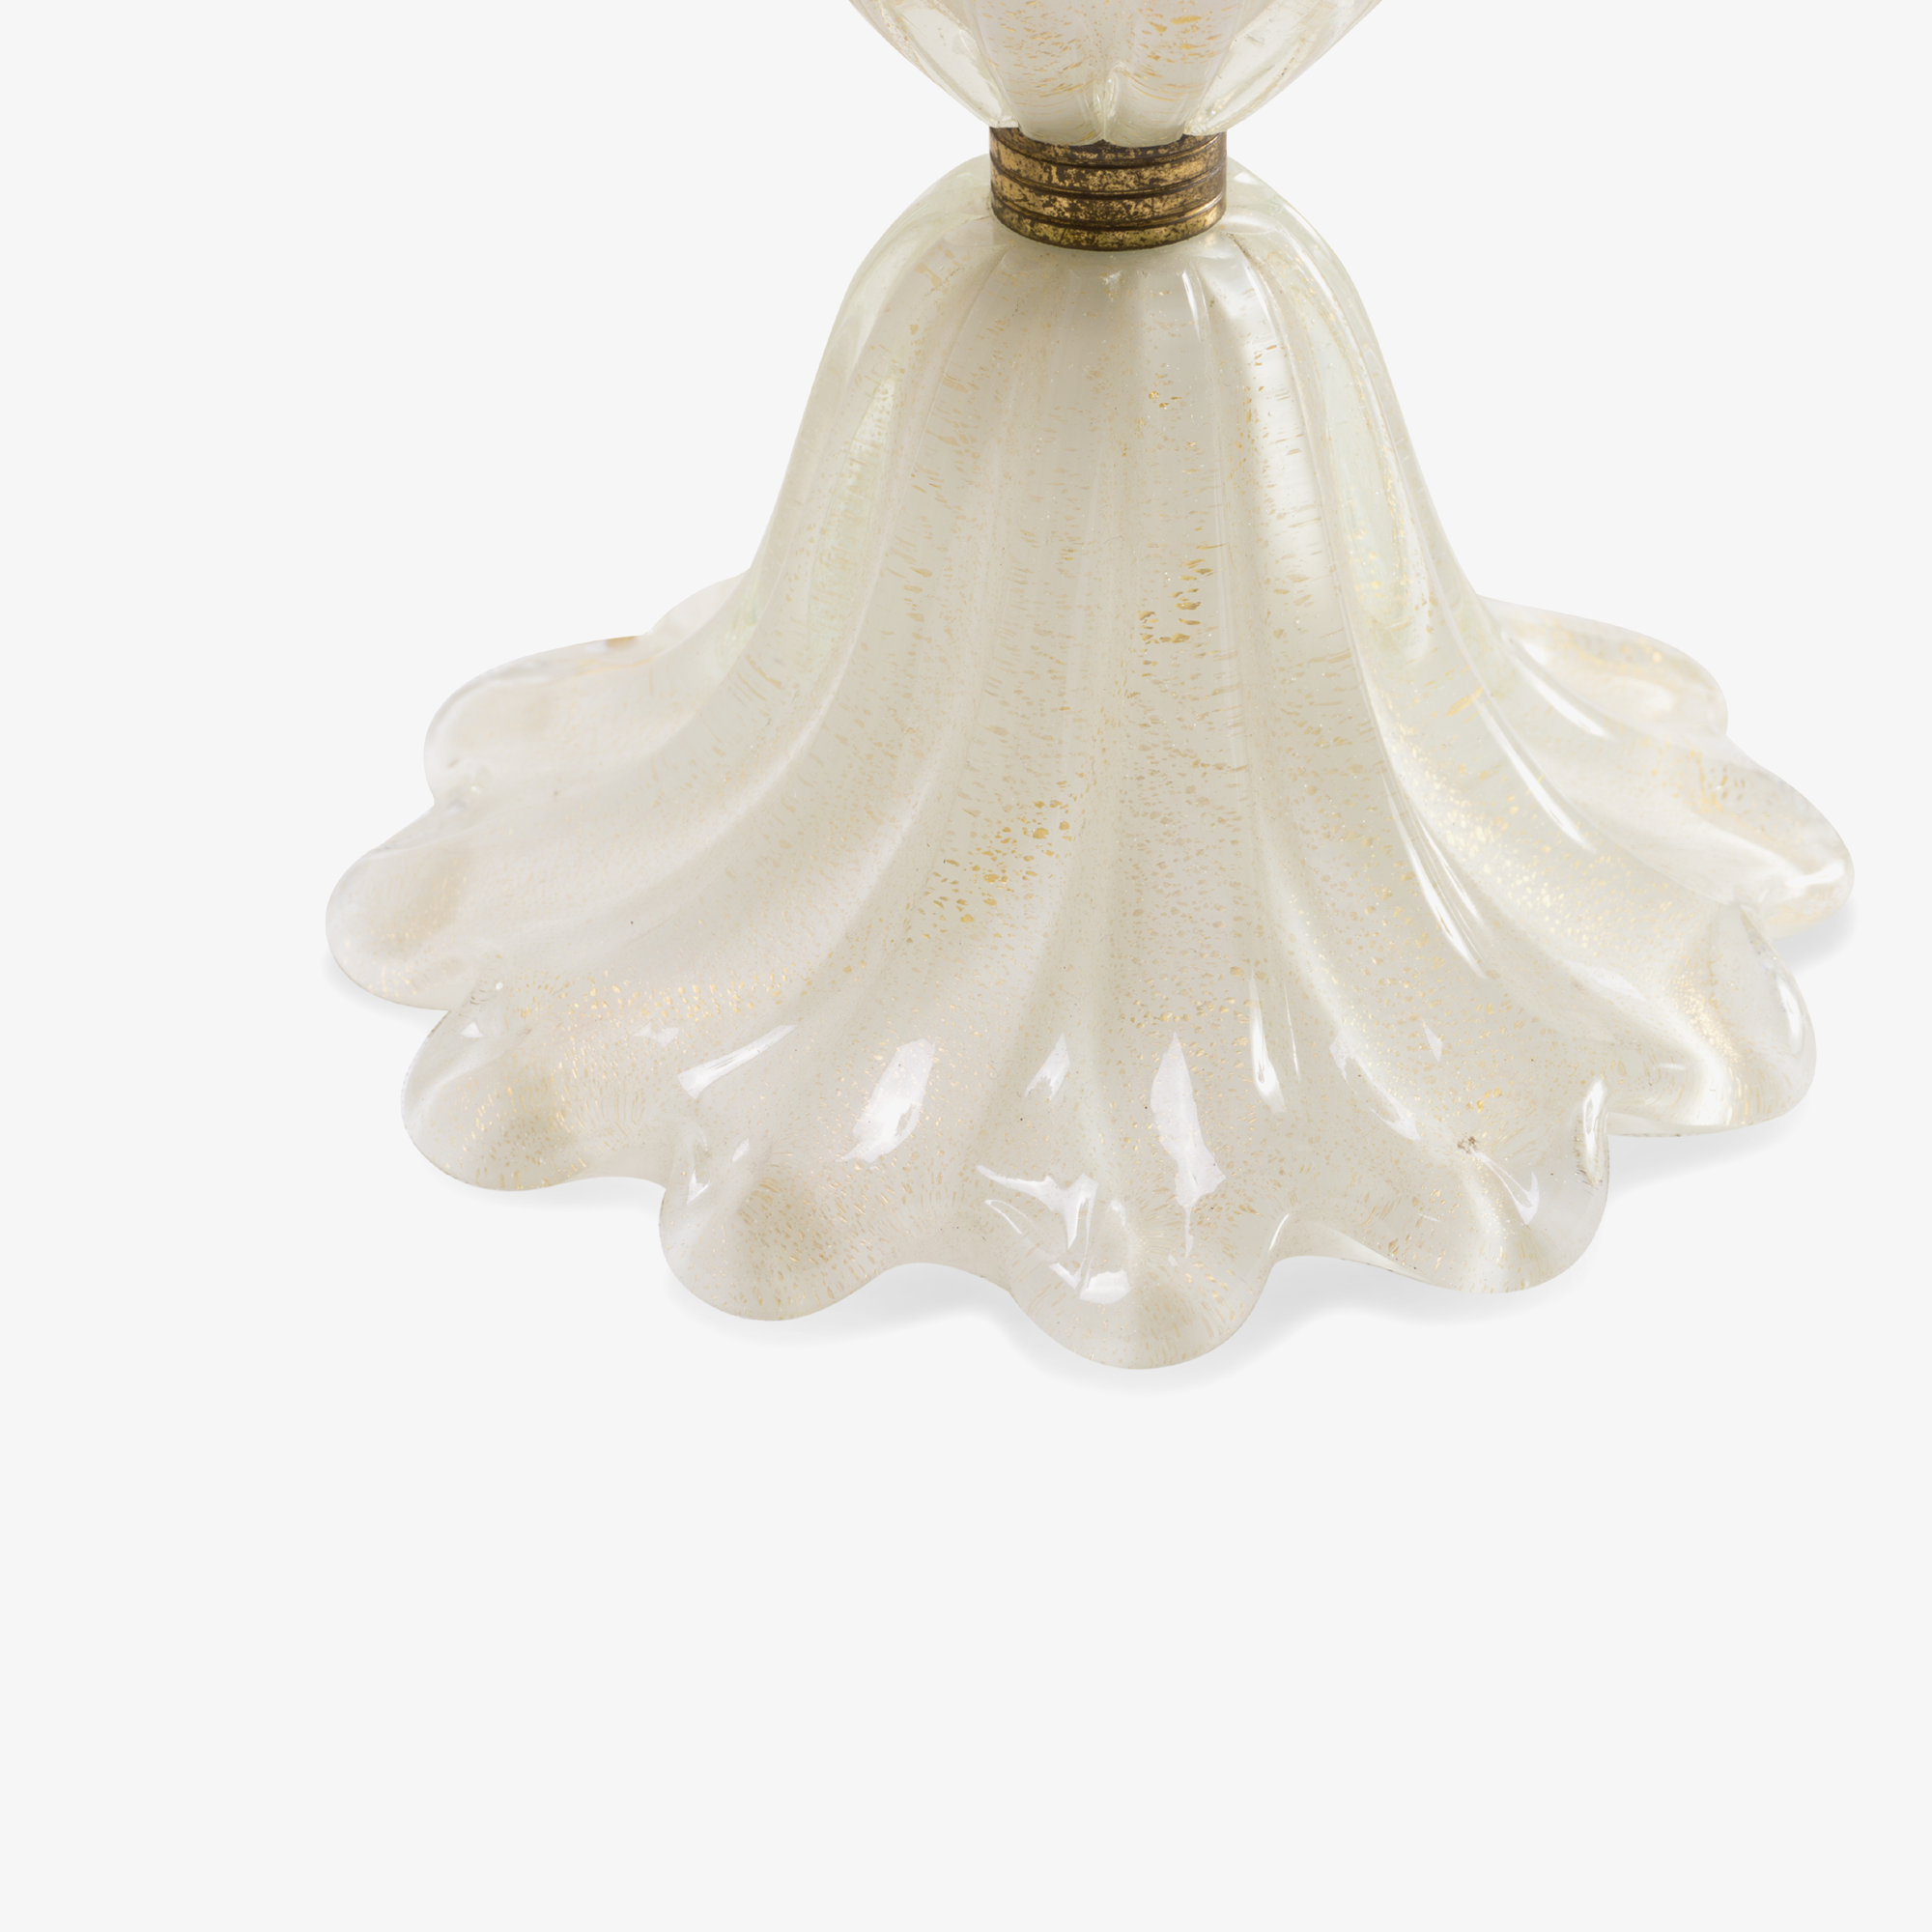 Draped White Murano Glass Lamp with Gold Inclusions and Brass Bands3.png